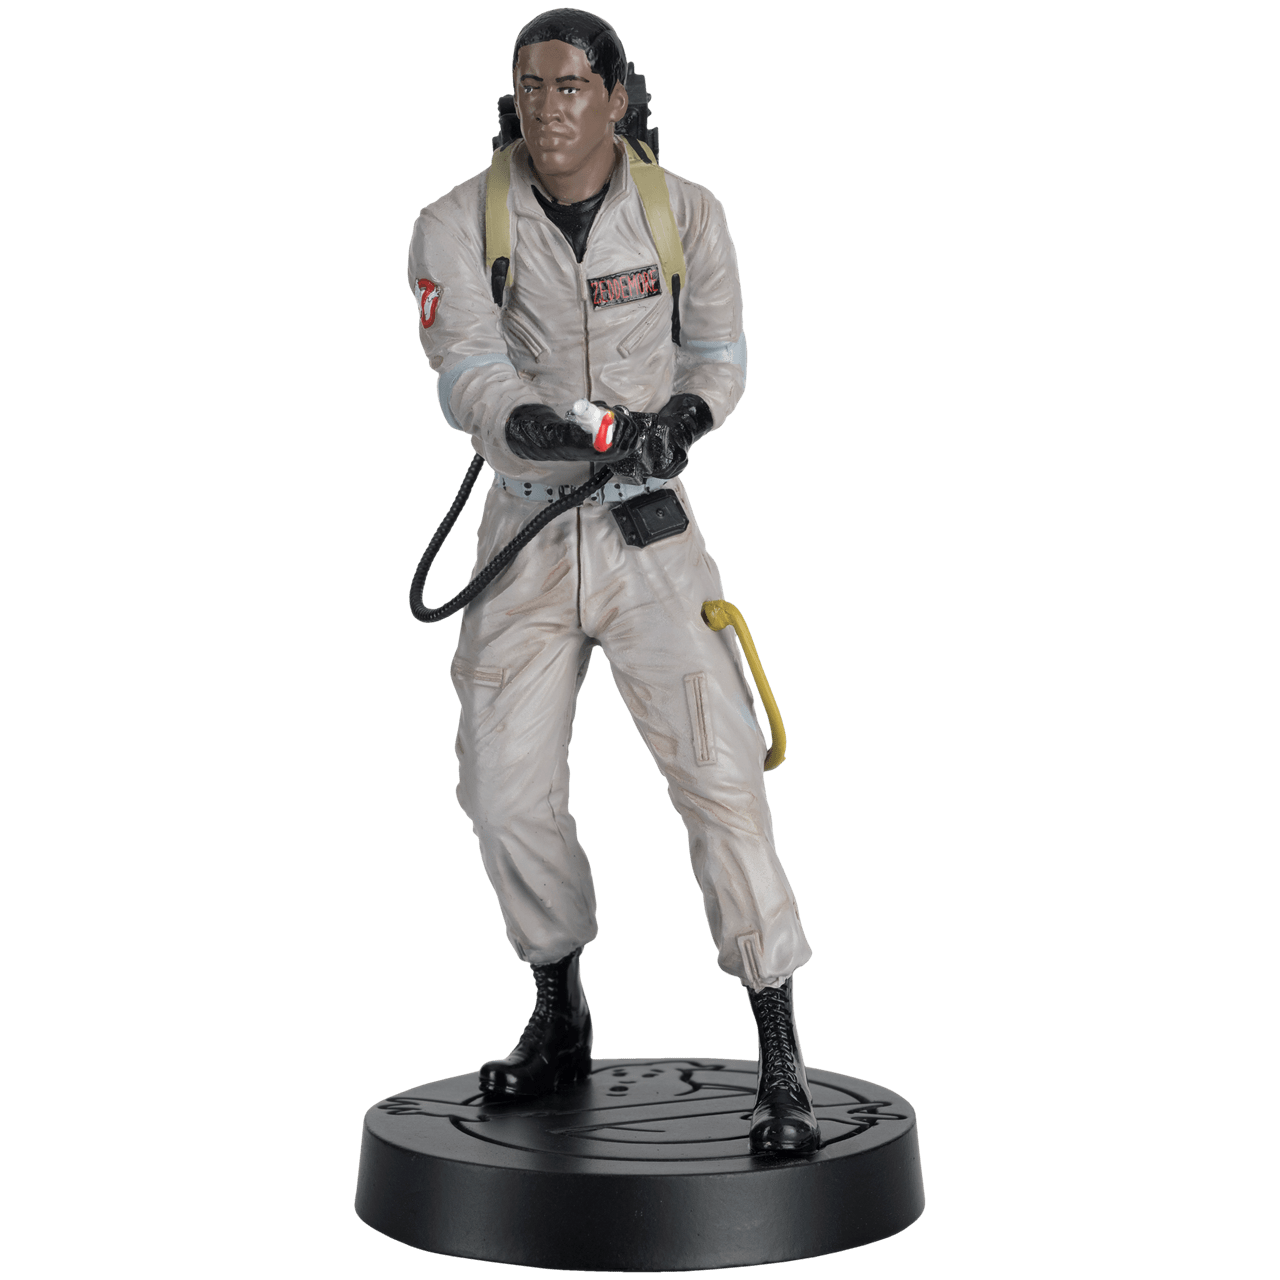 Ghostbusters 4 Figurine Set: Hero Collector - 5